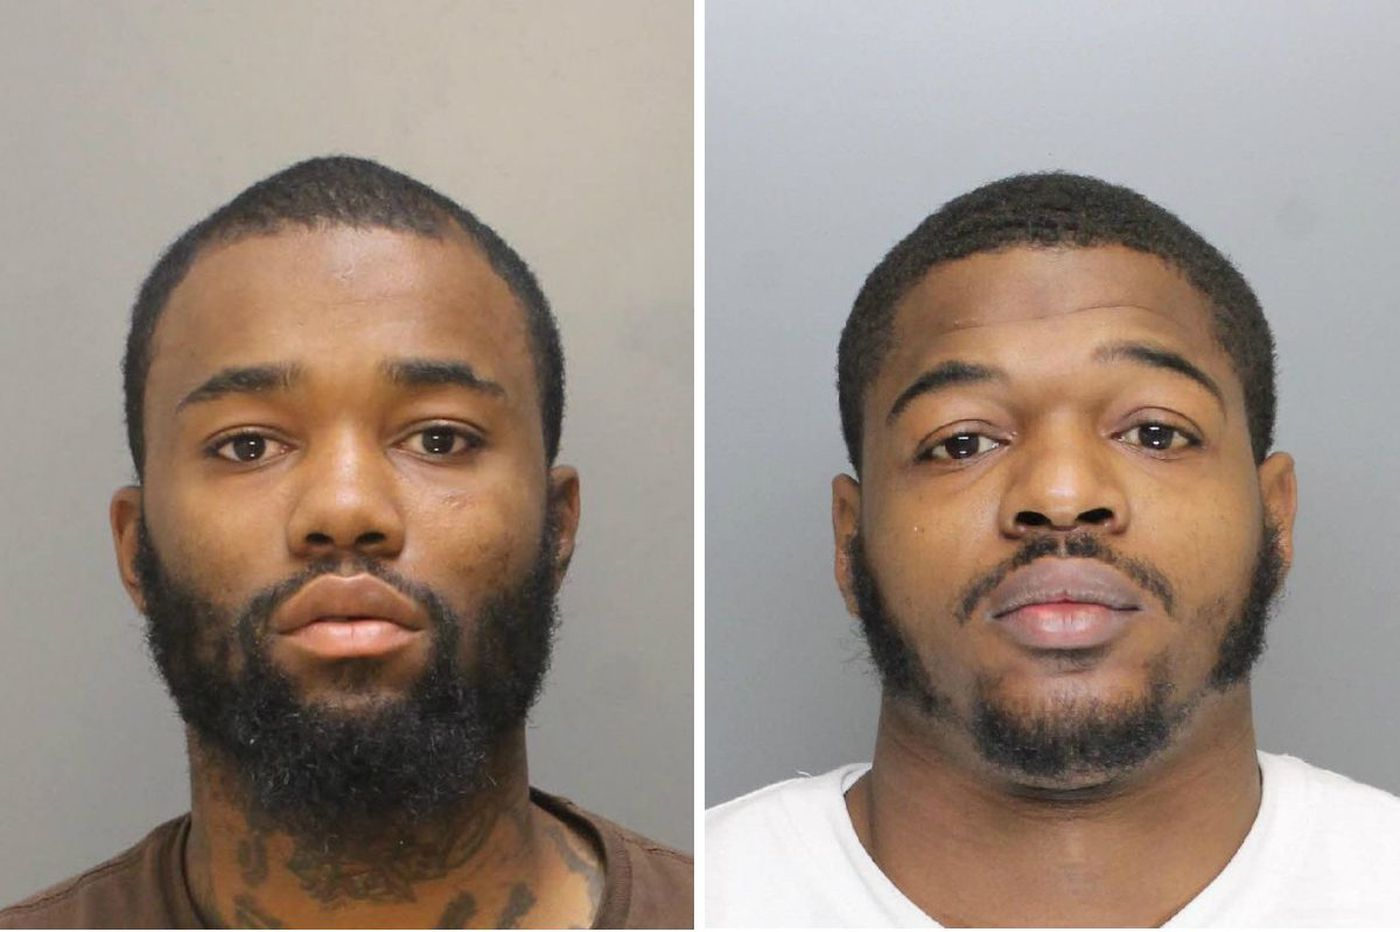 1 man arrested, 1 sought in Kensington double shooting that wounded toddler